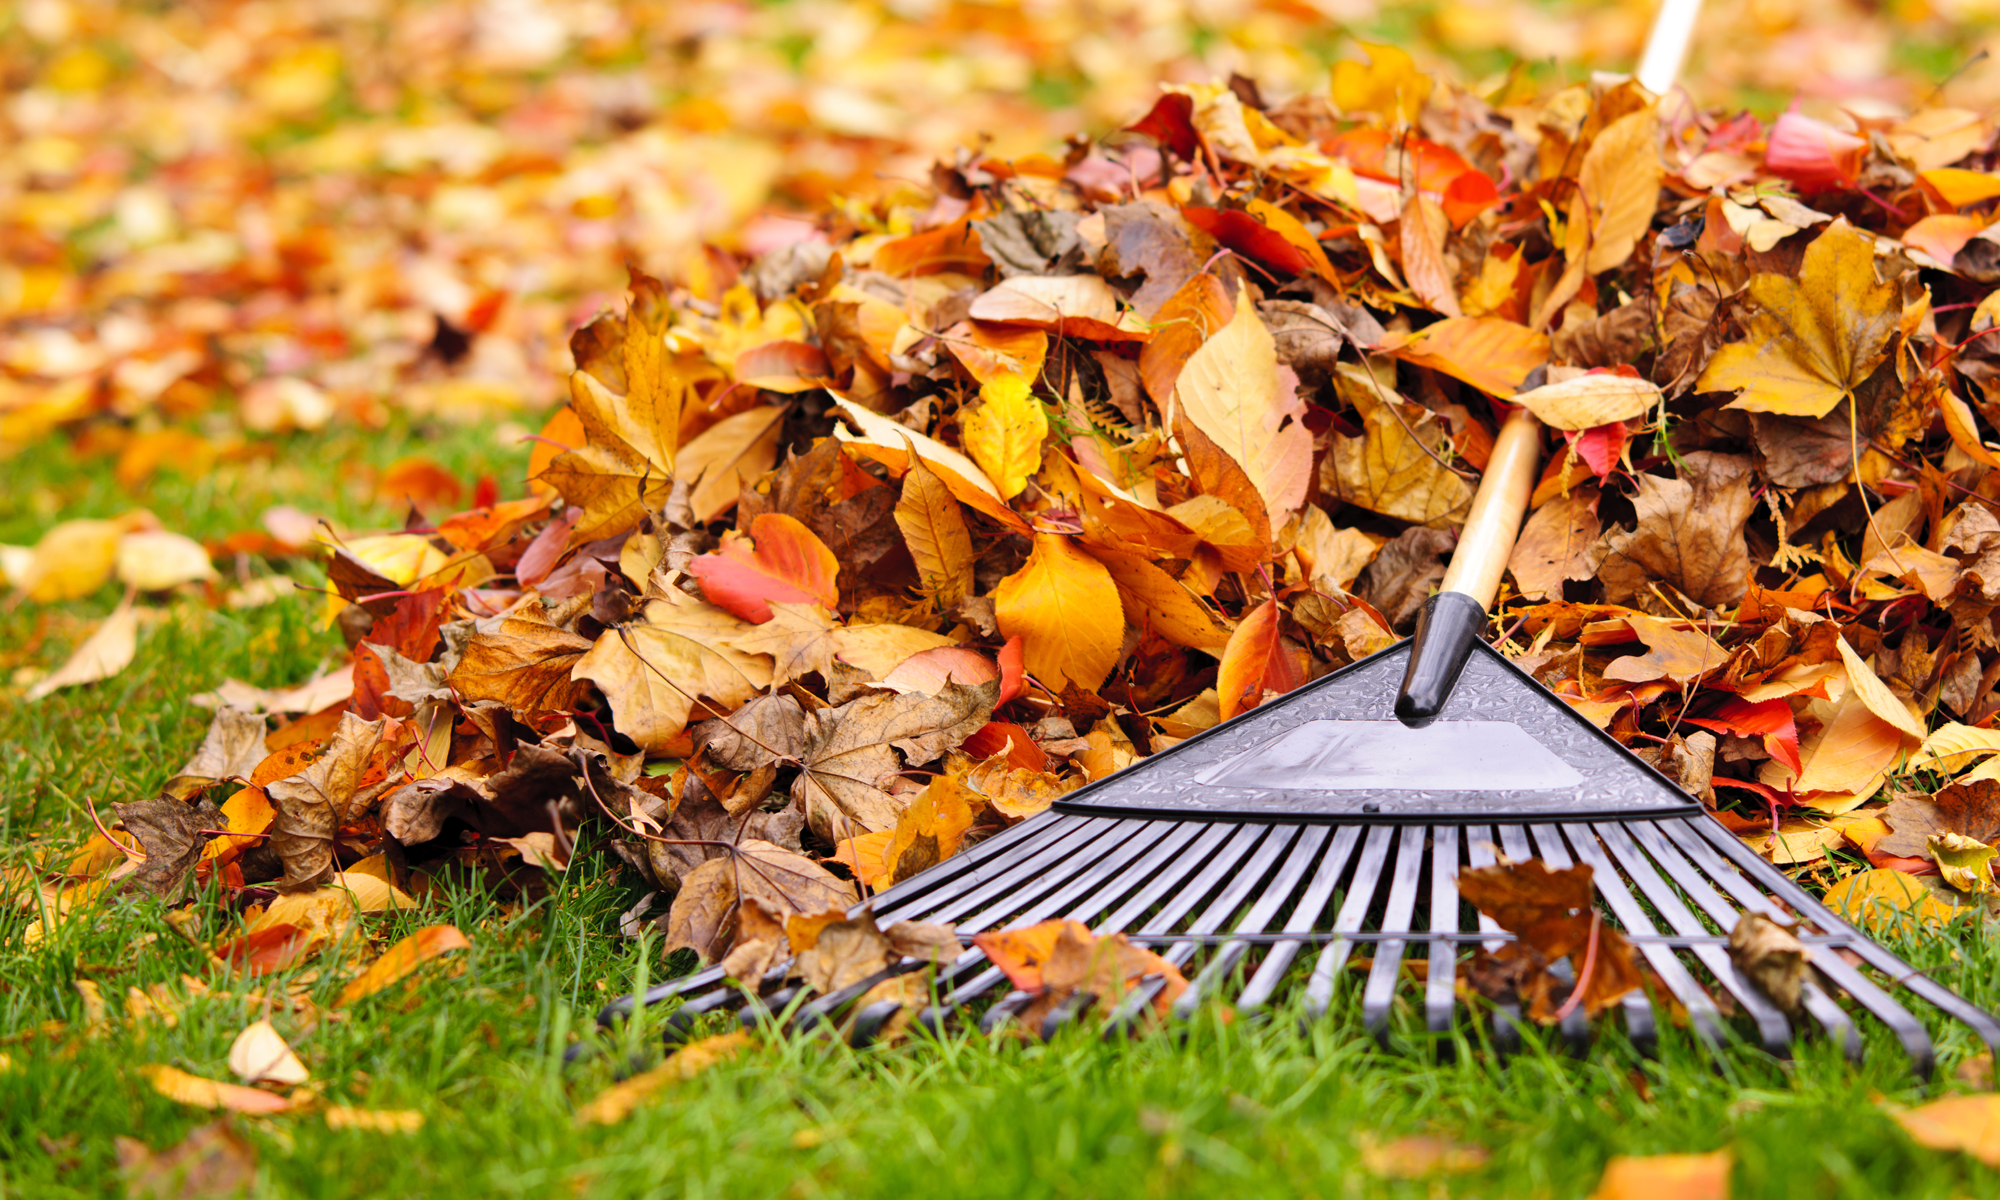 DecoMax Landscaping Commercial Spring and Fall Clean Up